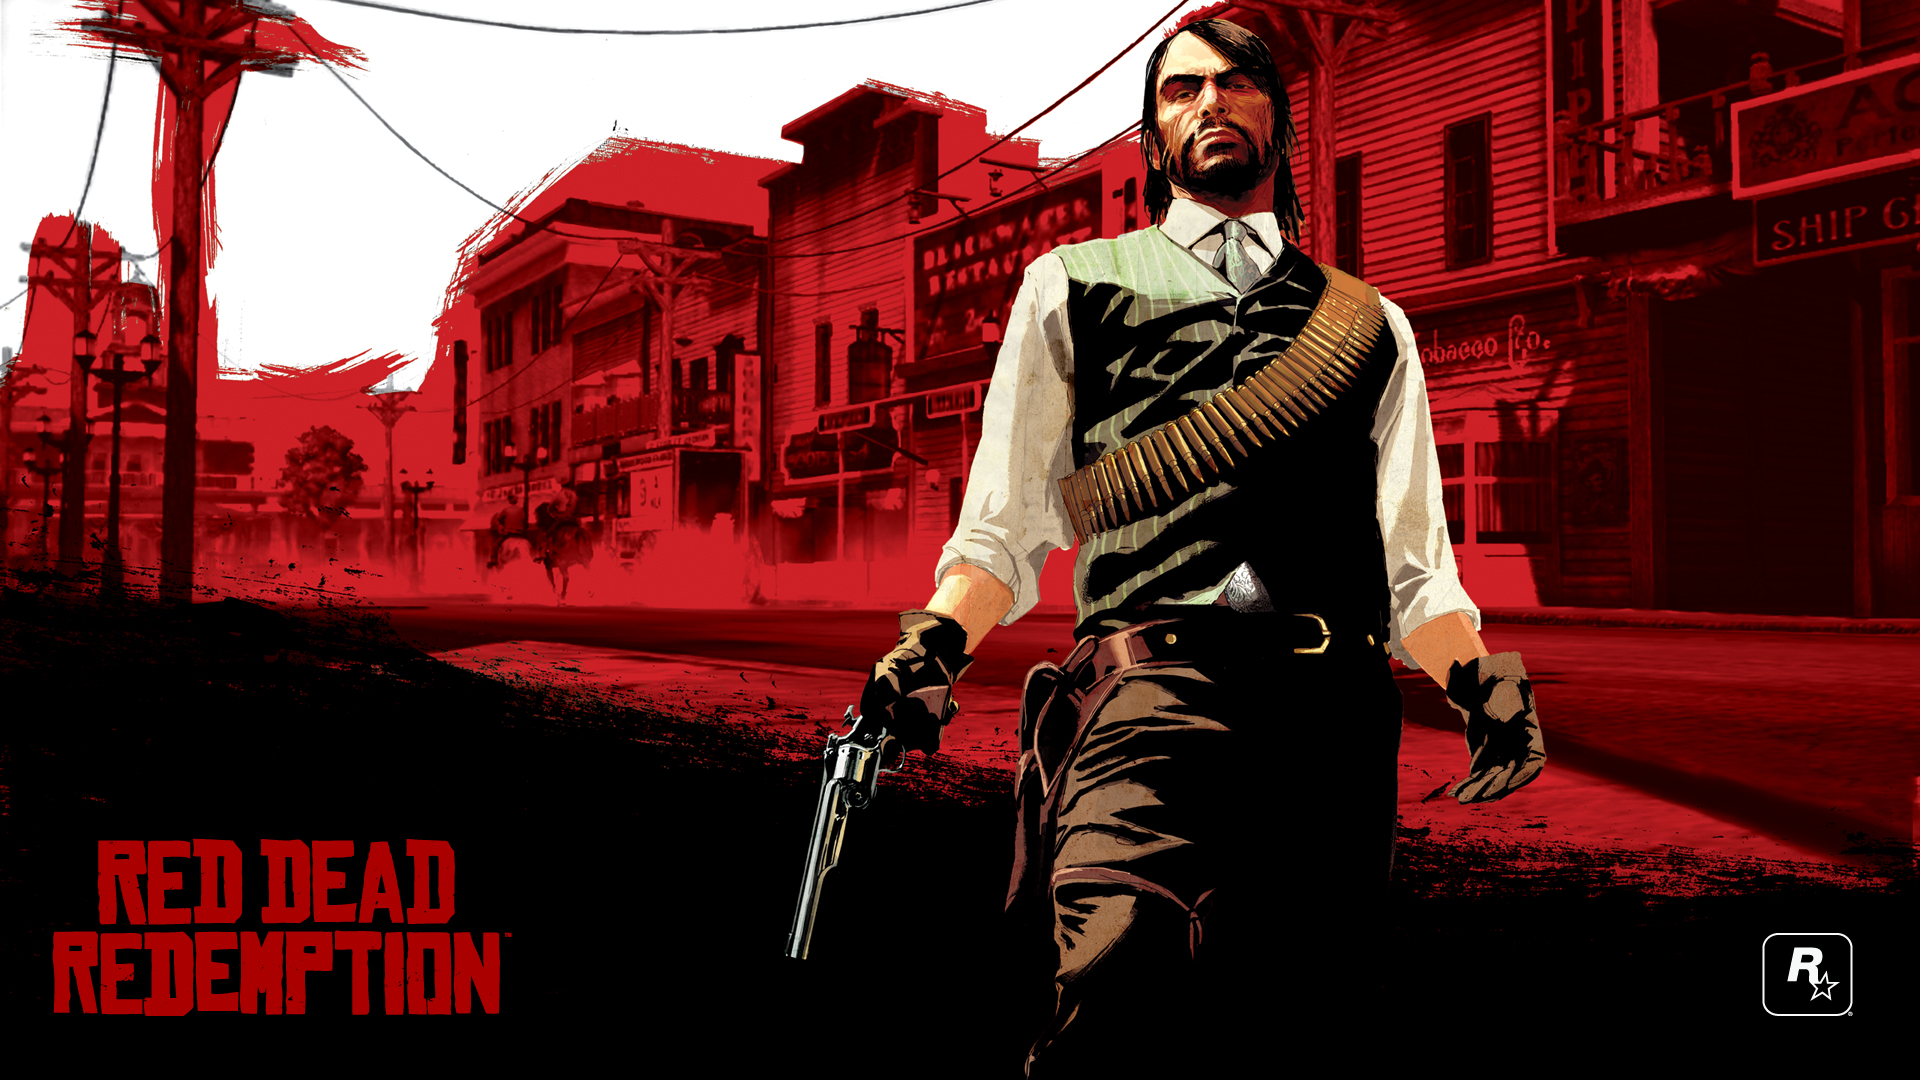 Red Dead Redemption sales rocketed since the announcement of Xbox One backwards capability